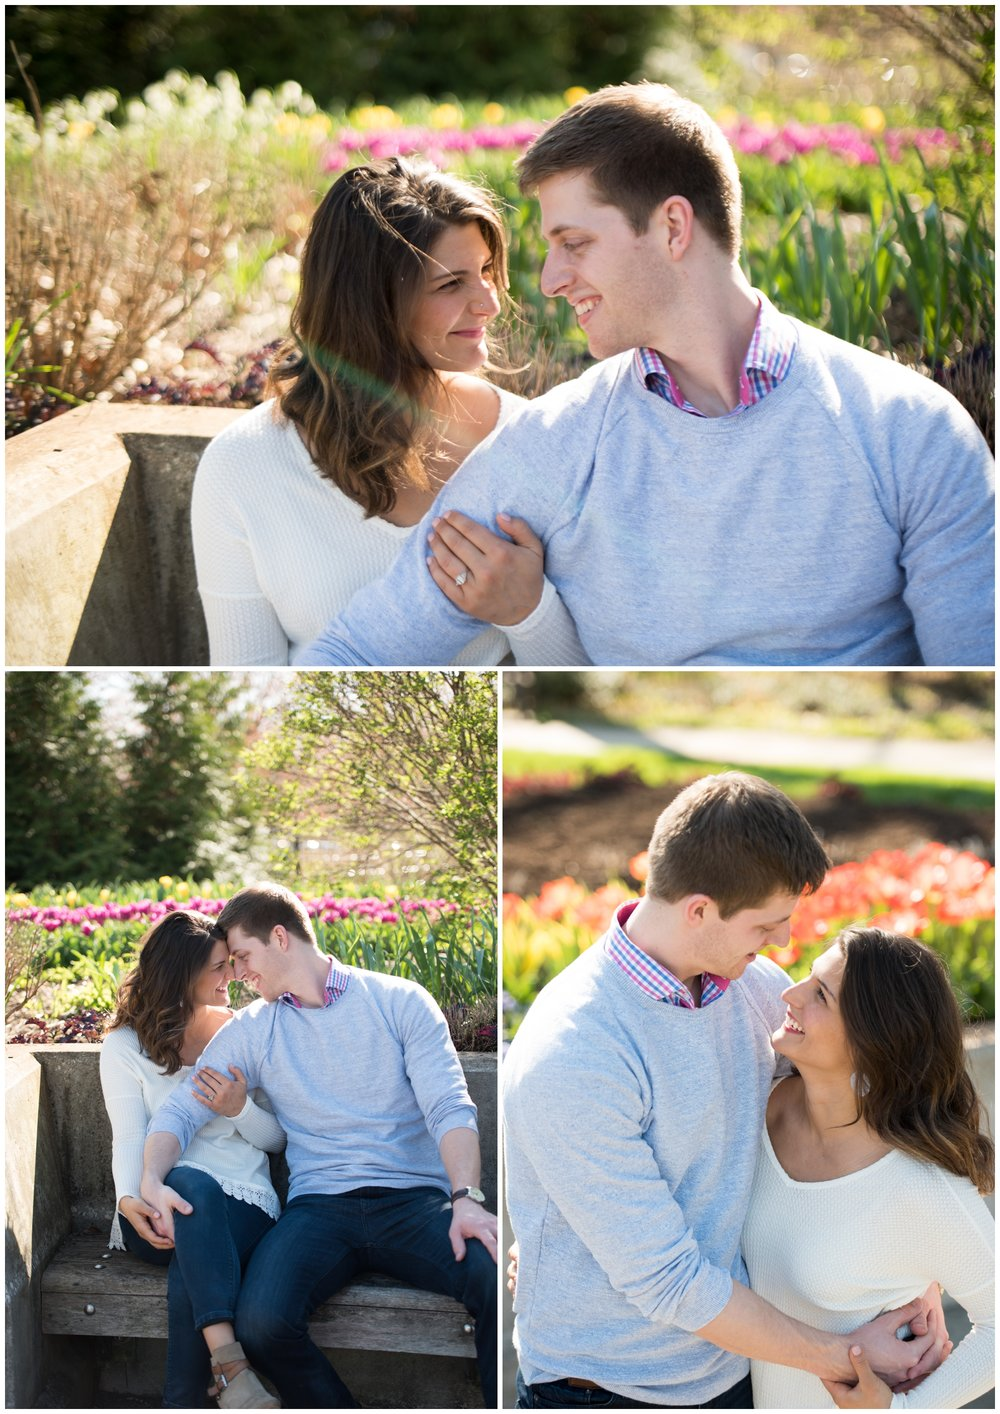 Indianapolis Engagement Session at the IMA by Rachael Foster Photography_0016.jpg